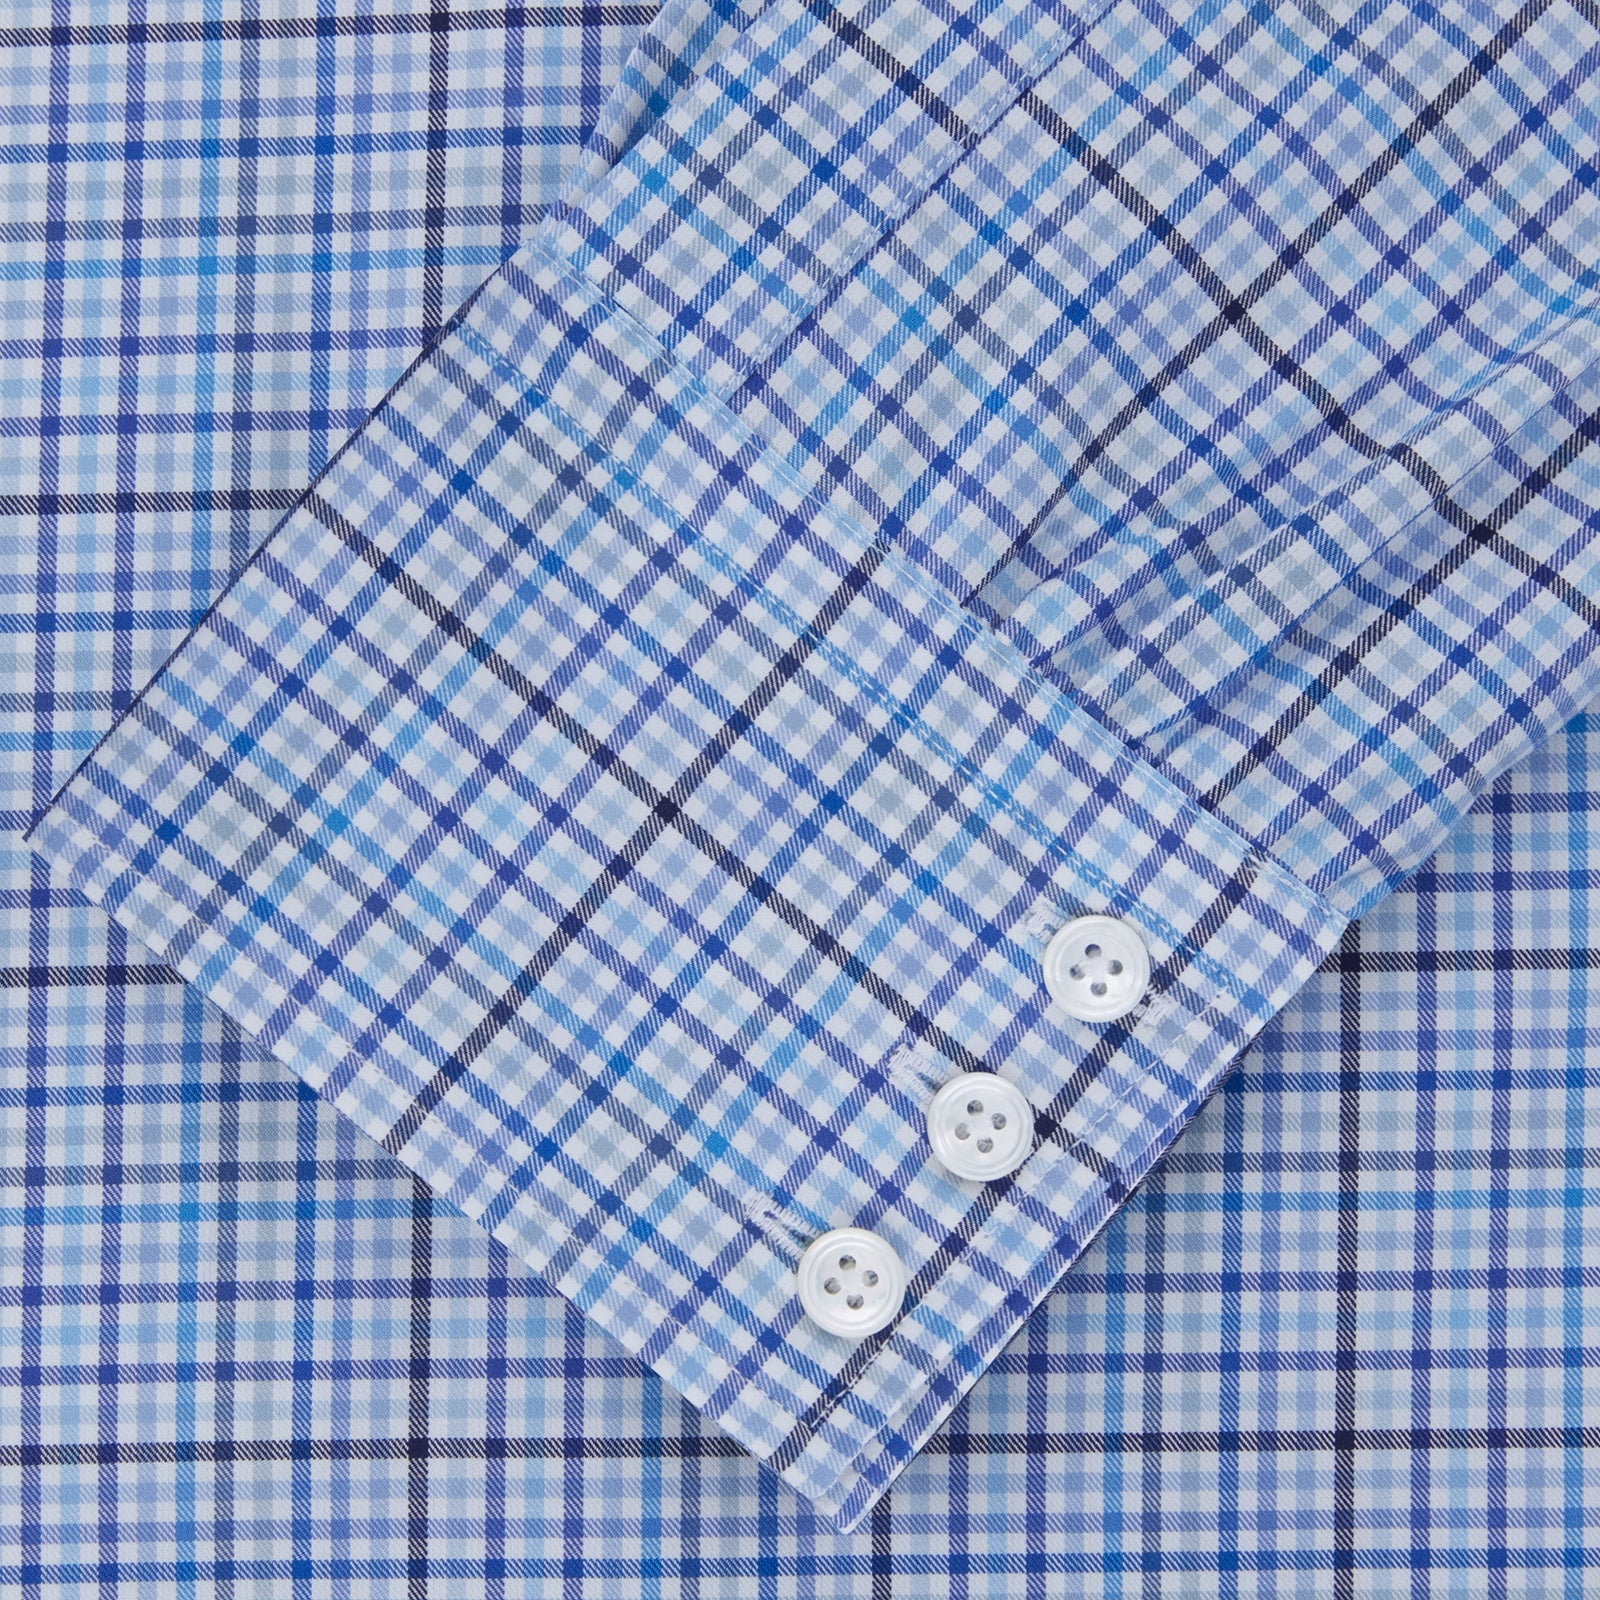 Blue and White Graph Check Shirt with T&A Collar and 3-Button Cuffs